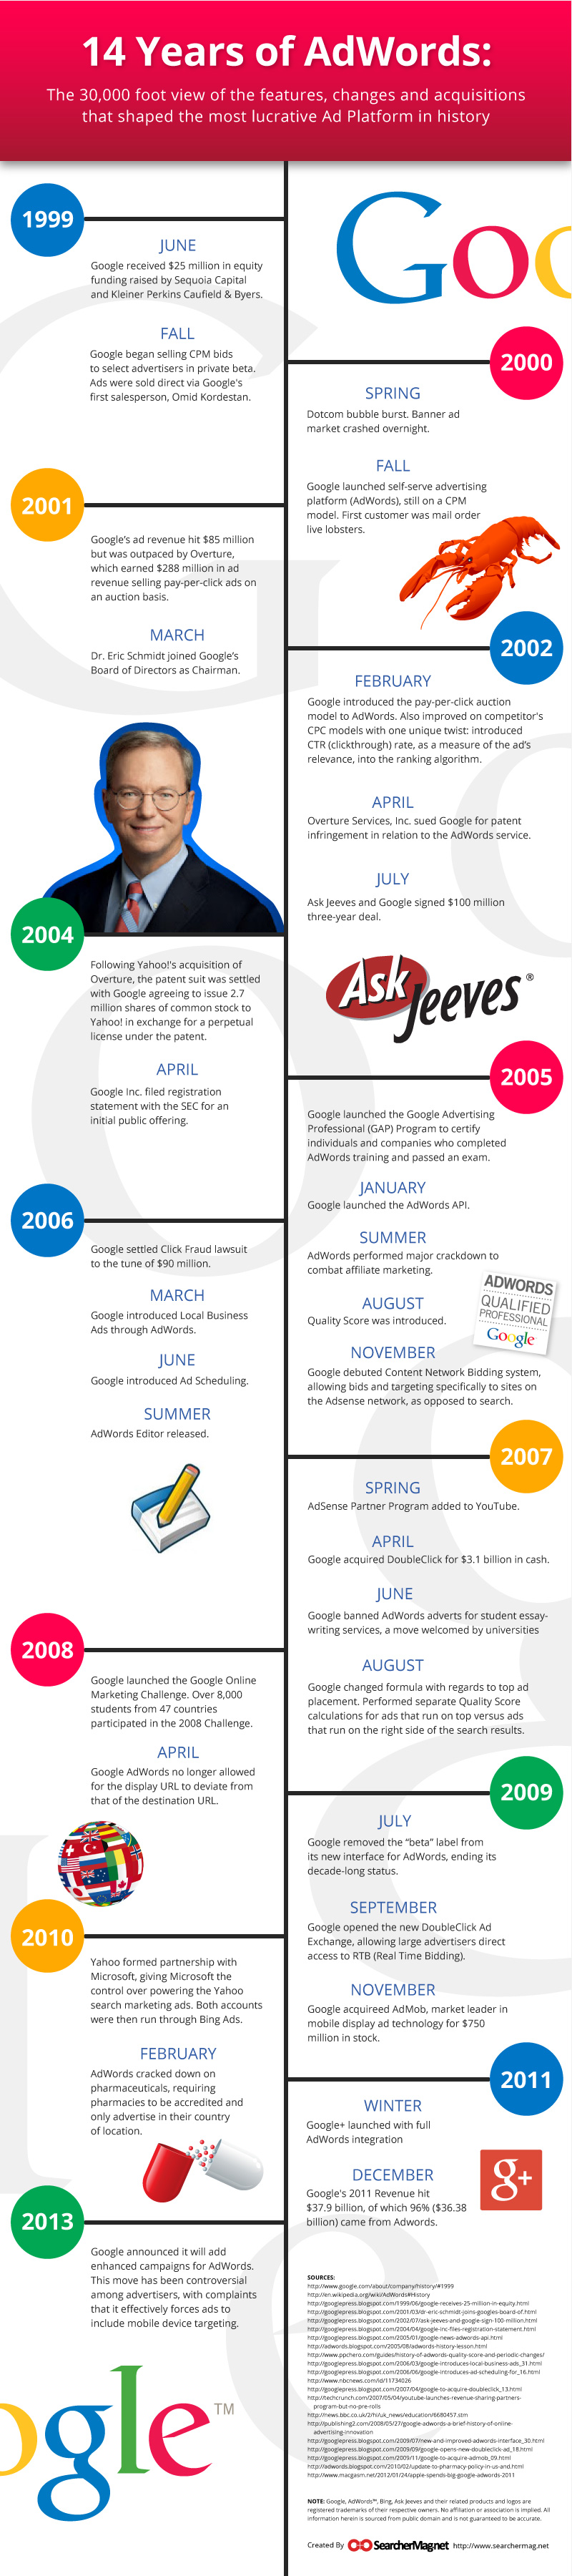 A Look Back at the History of Adwords [Infographic] - An Infographic from SearcherMag.net